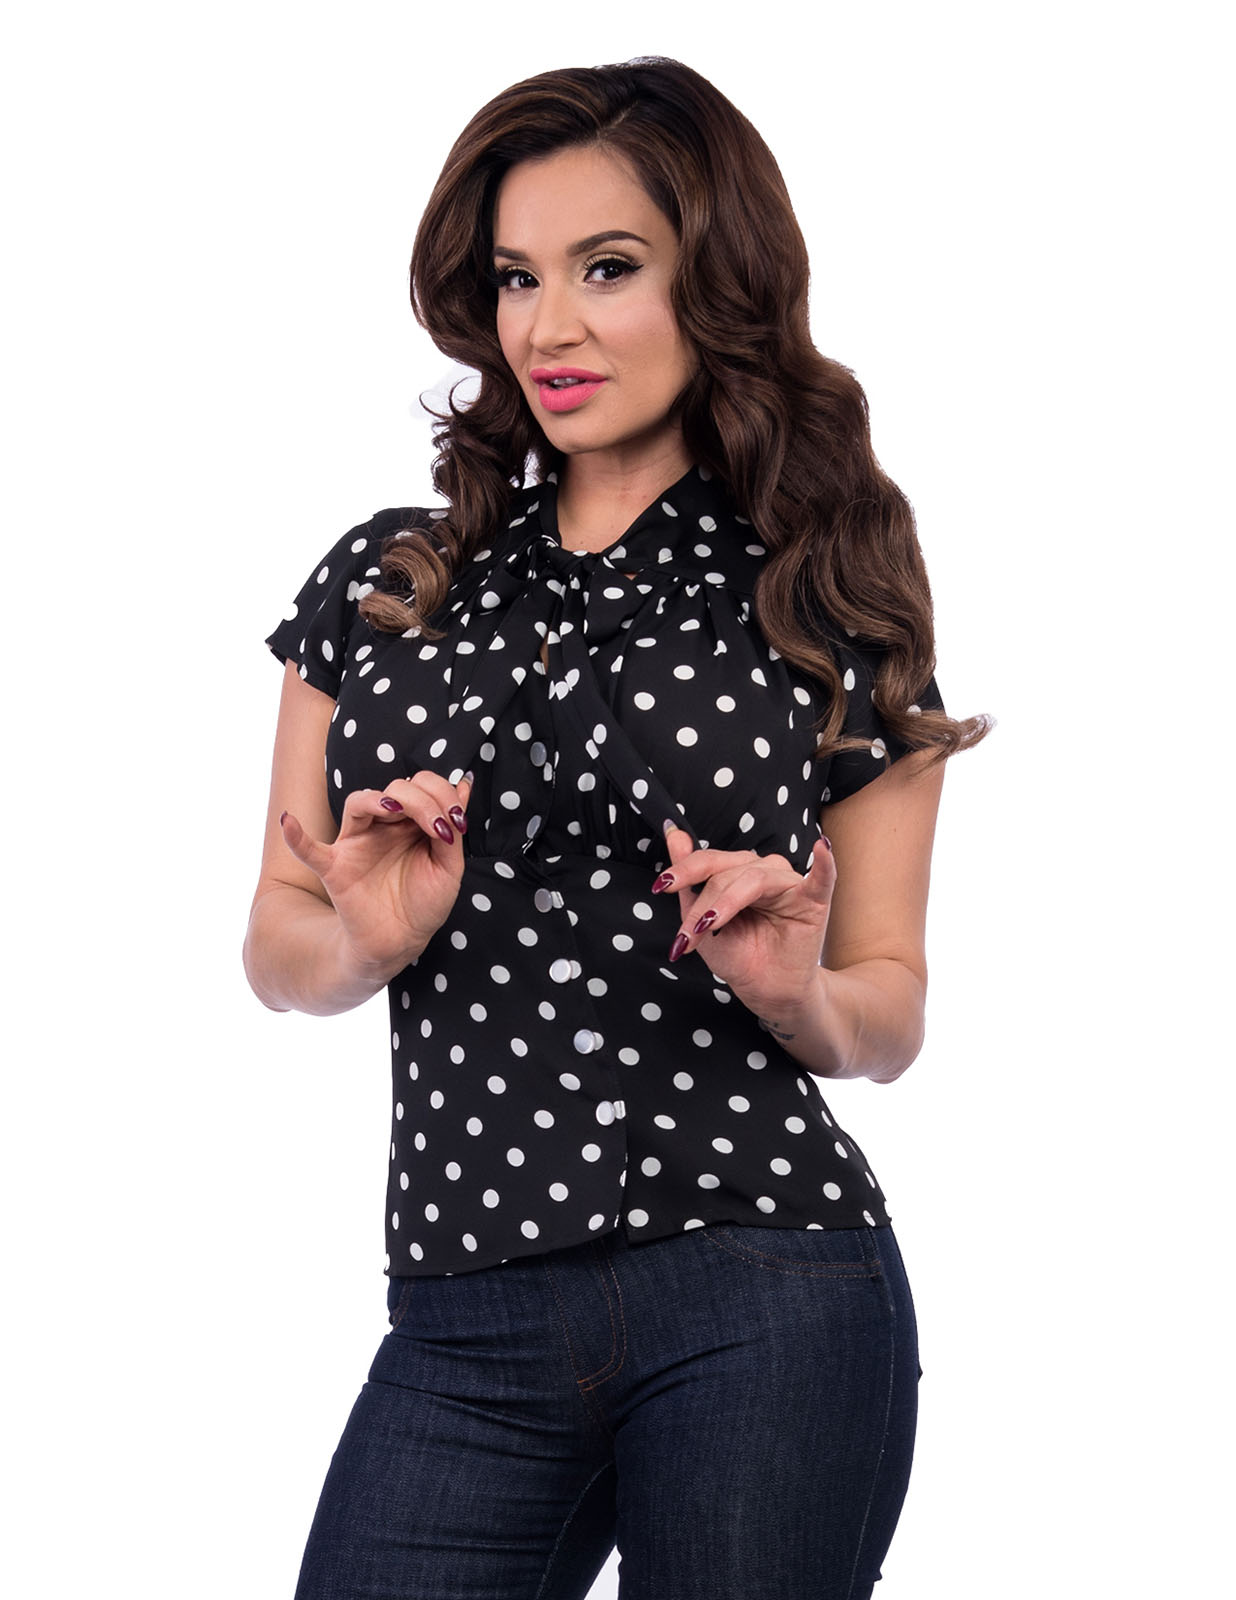 Harlow Chiffon Top in Black & White Polka Dot by Steady